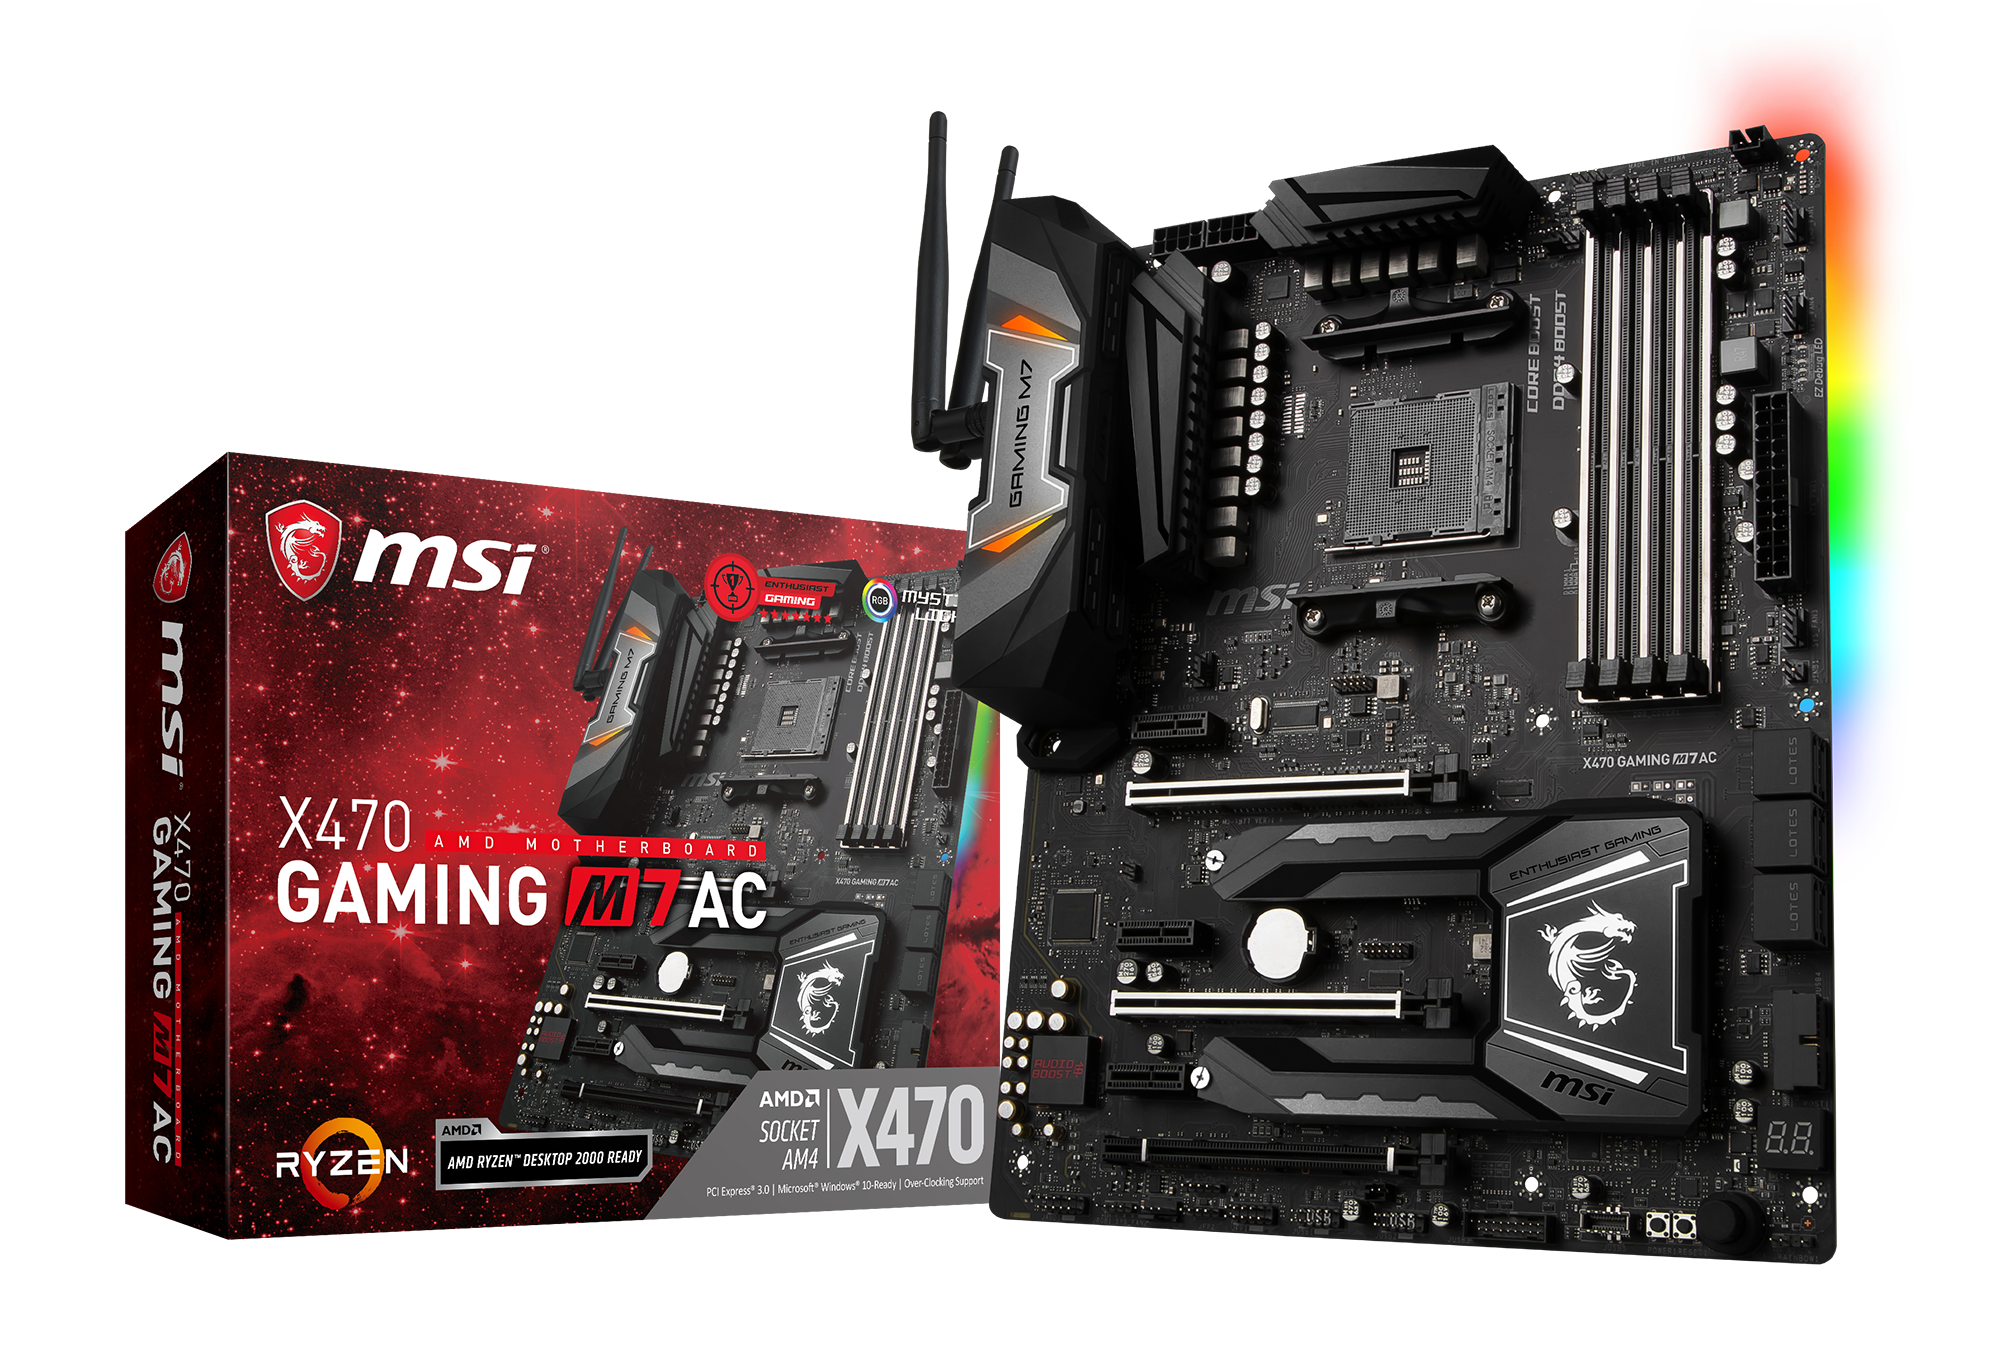 MSI 7B77-001R X470 Gaming M7 AC AMD X470 Socket AM4 ATX Chipset - 4 x DDR4 up